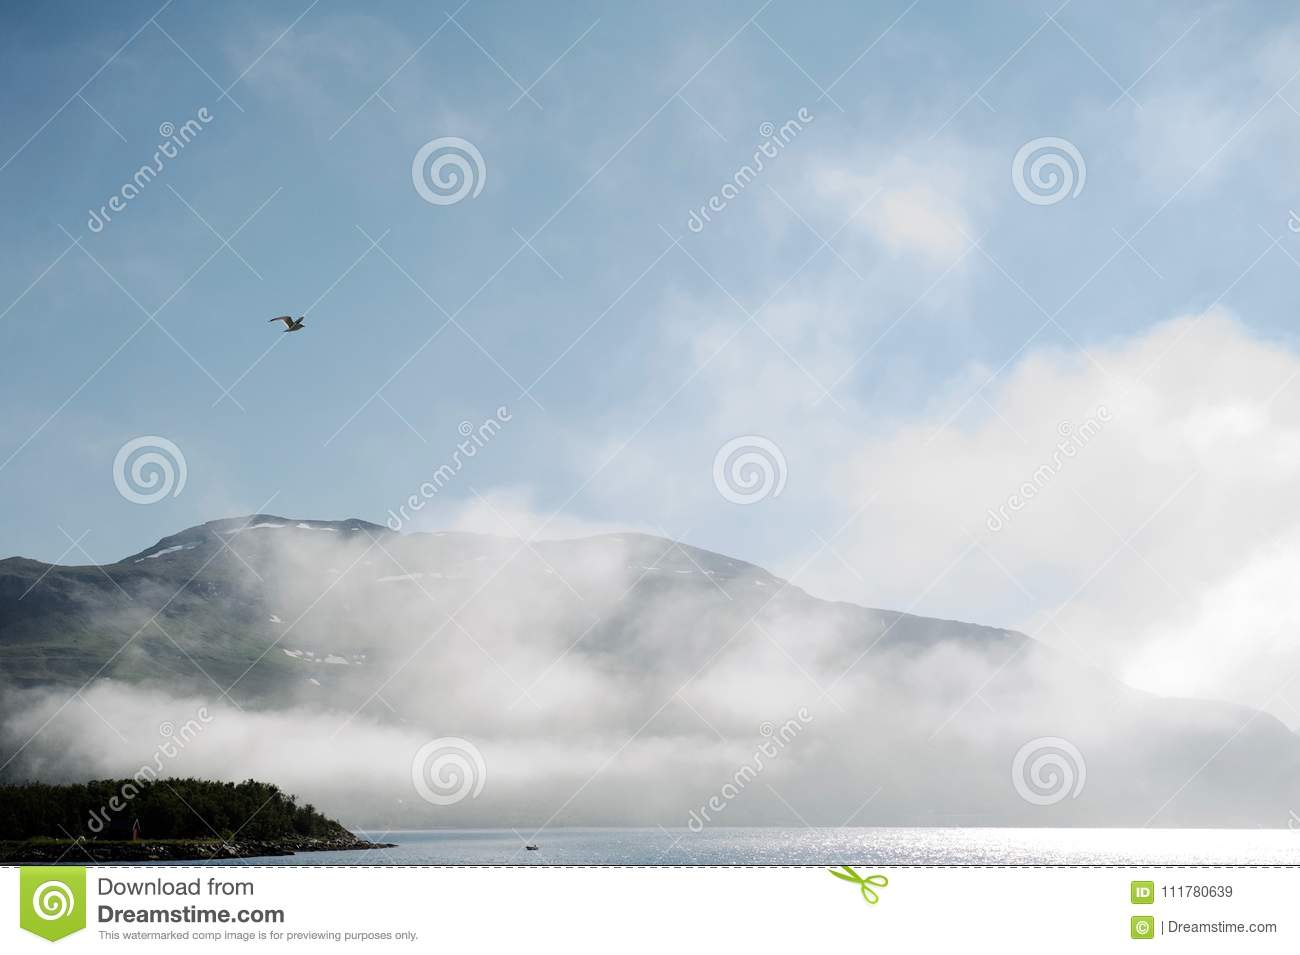 Seagull flying in the sky above cold norvegian fjord.